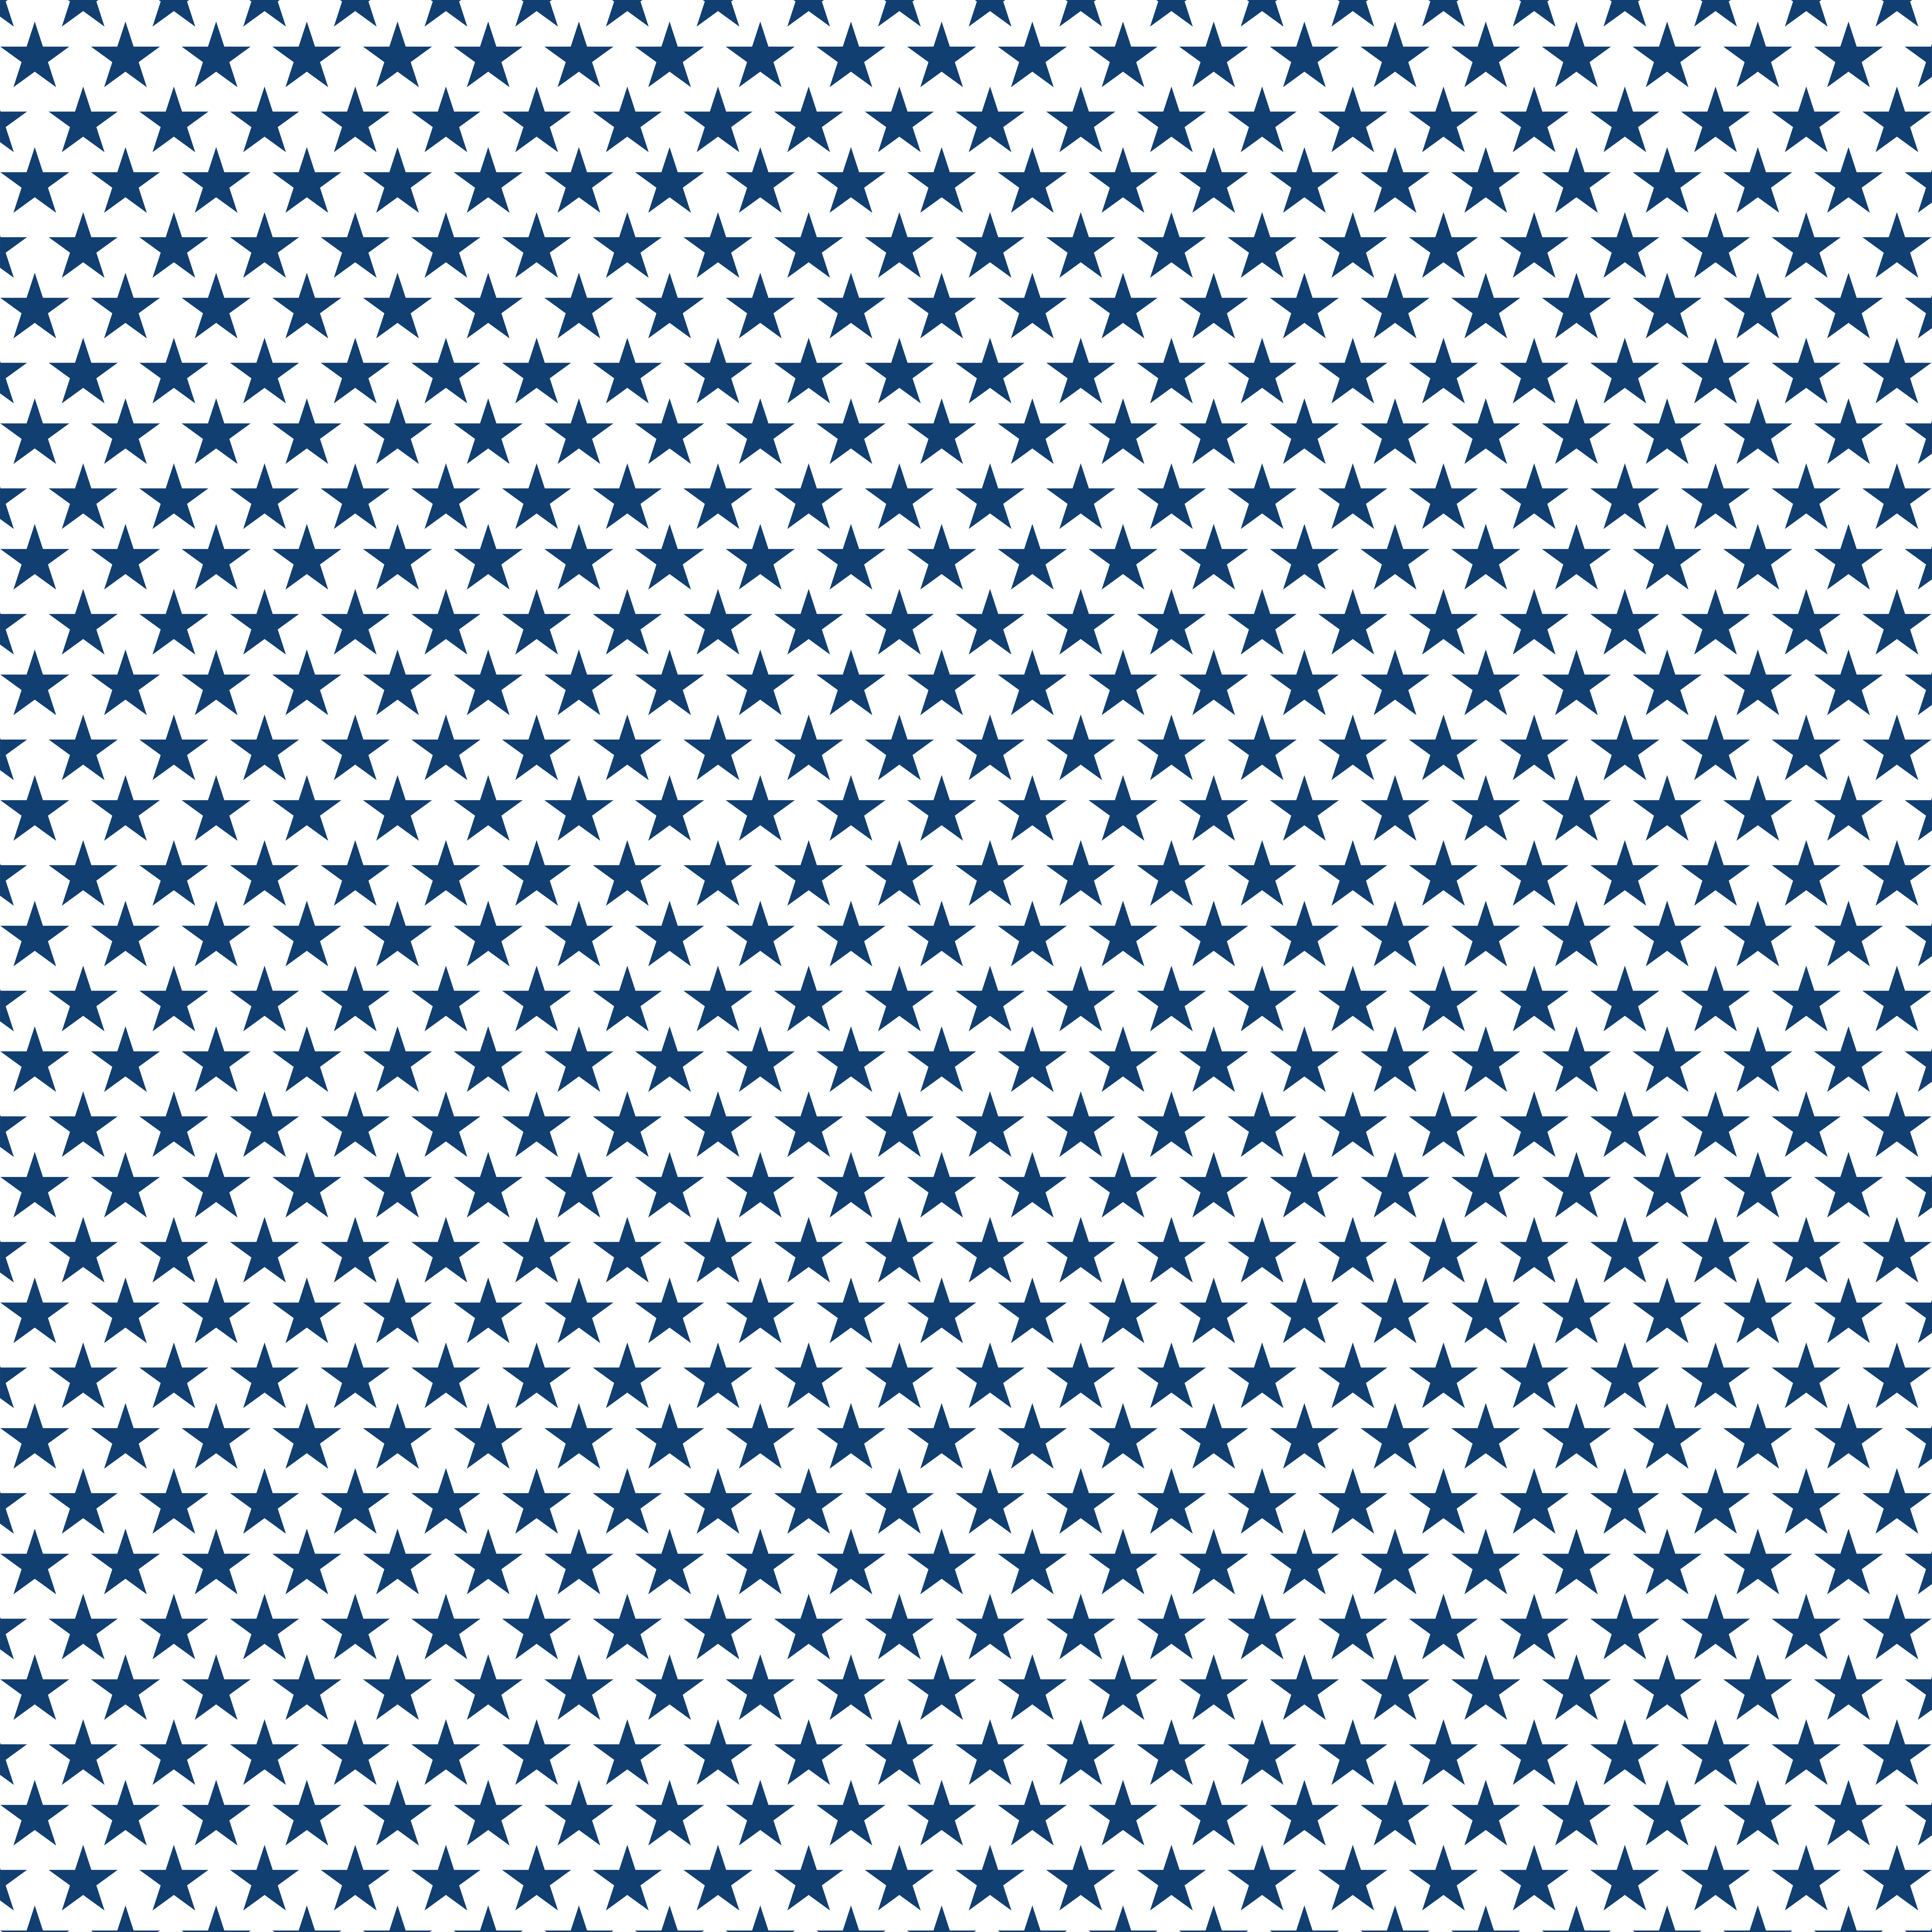 Clipart stars teal. For backgrounds transparent png